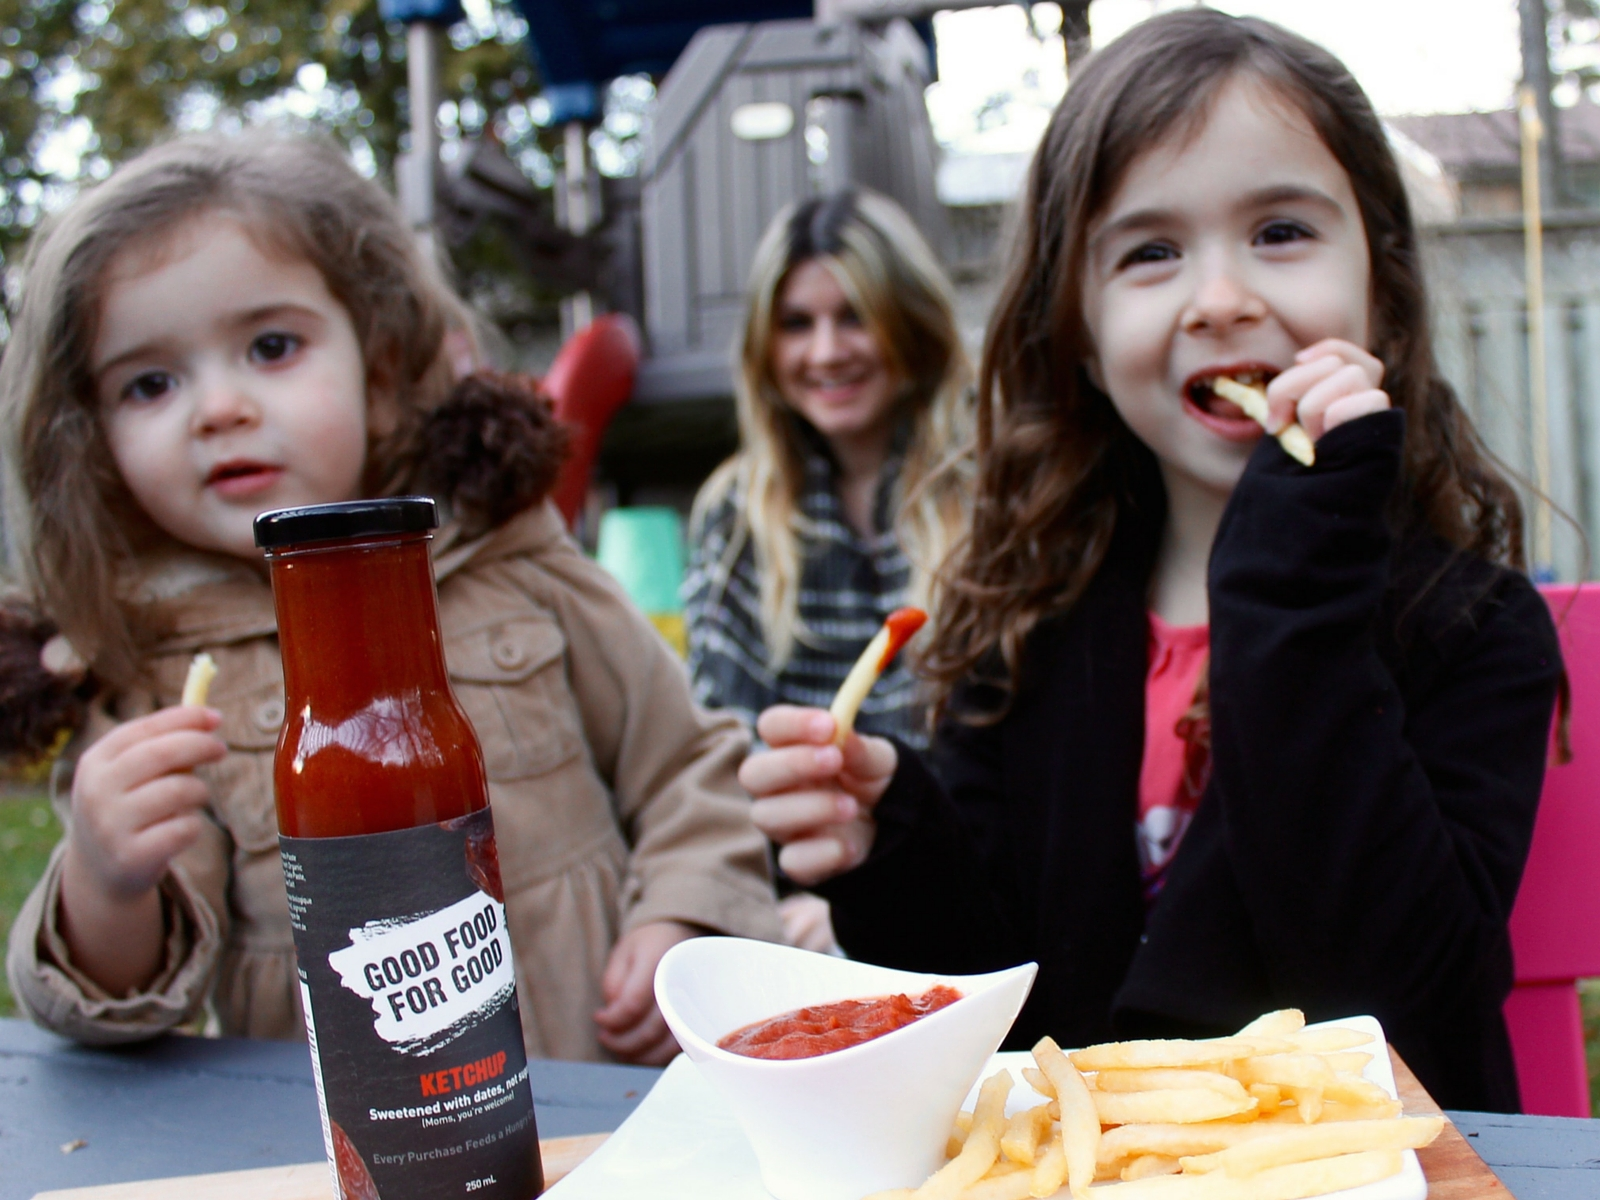 GOOD FOOD FOR GOOD Ketchup, Sweetened with Dates | Moms you are welcome